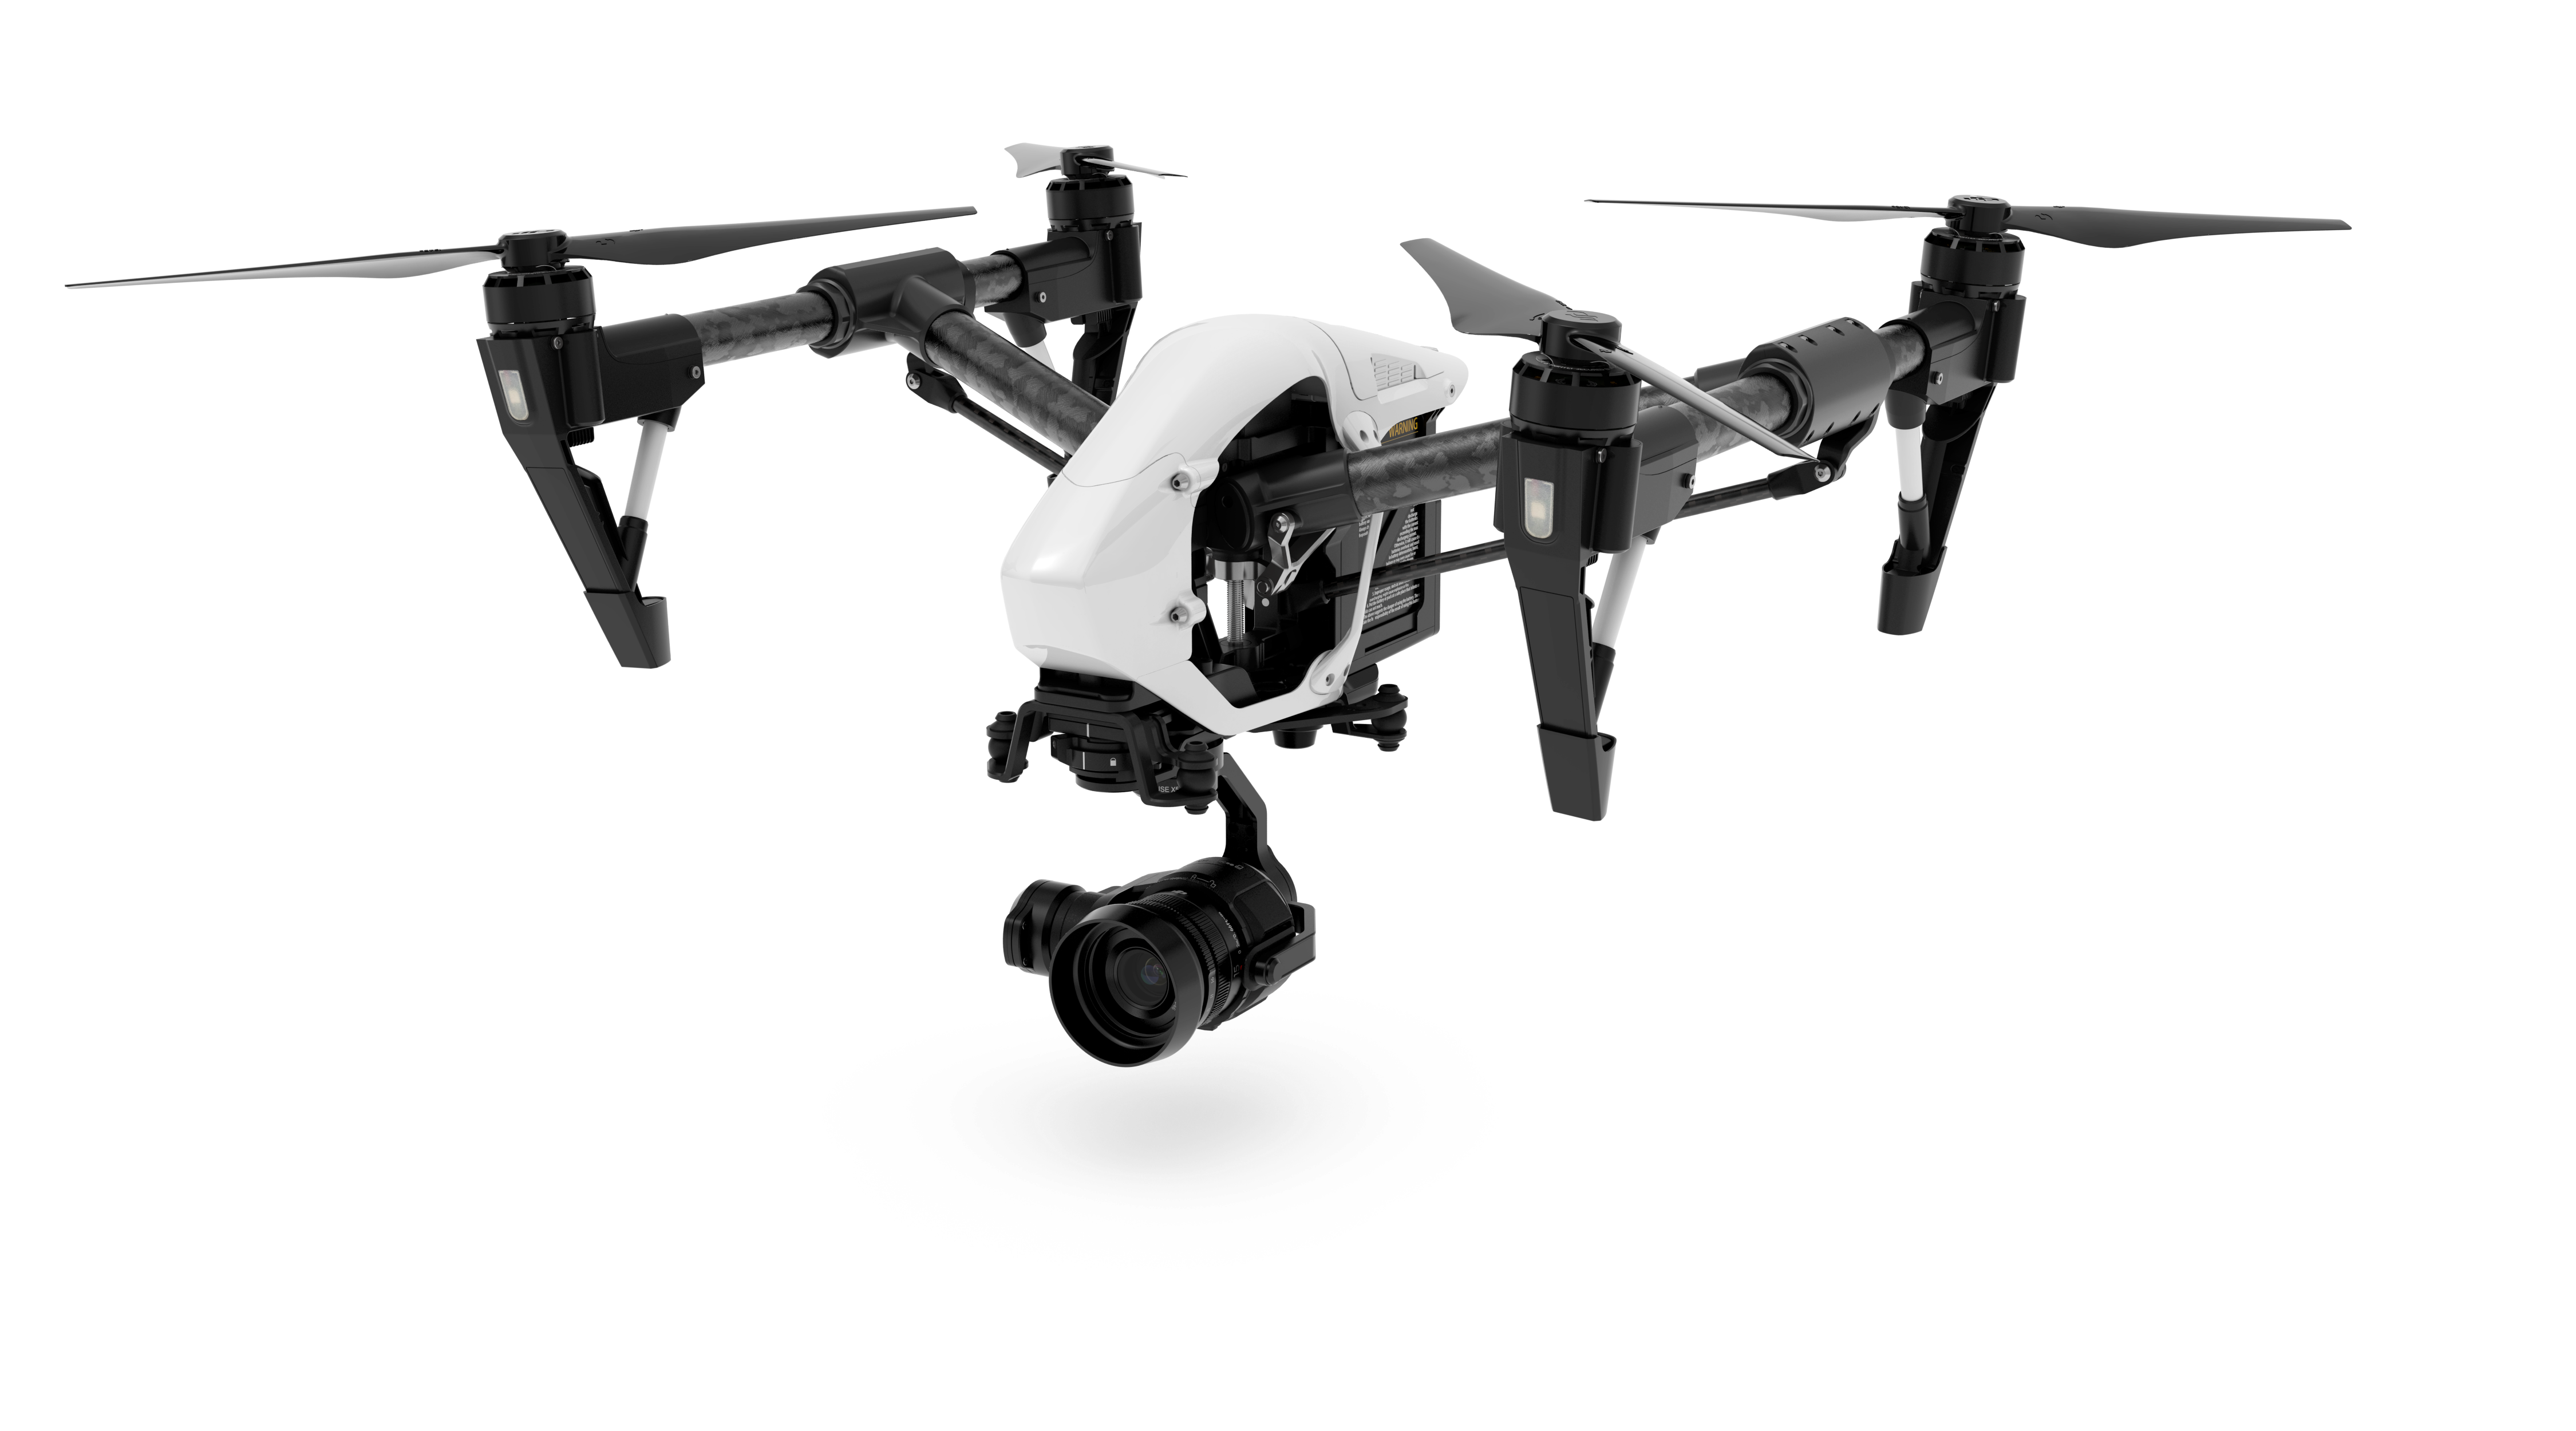 best drone with camera and monitor with Dji Introduces Two New Drones Phantom 4 Pro And Inspire 2 on Camera Resolution Explained together with Drone Qr350 likewise Racer 250 Fpv Drones Flysky Fs I6 2 4g 6ch Transmitter 7 Inch 32ch Monitor Hd Camera Rtf in addition Imagenes Hd 1080p 2012 Alguna Te Llevas as well Drones Could Replace 127 Billion Of Human Labor 2016 5.